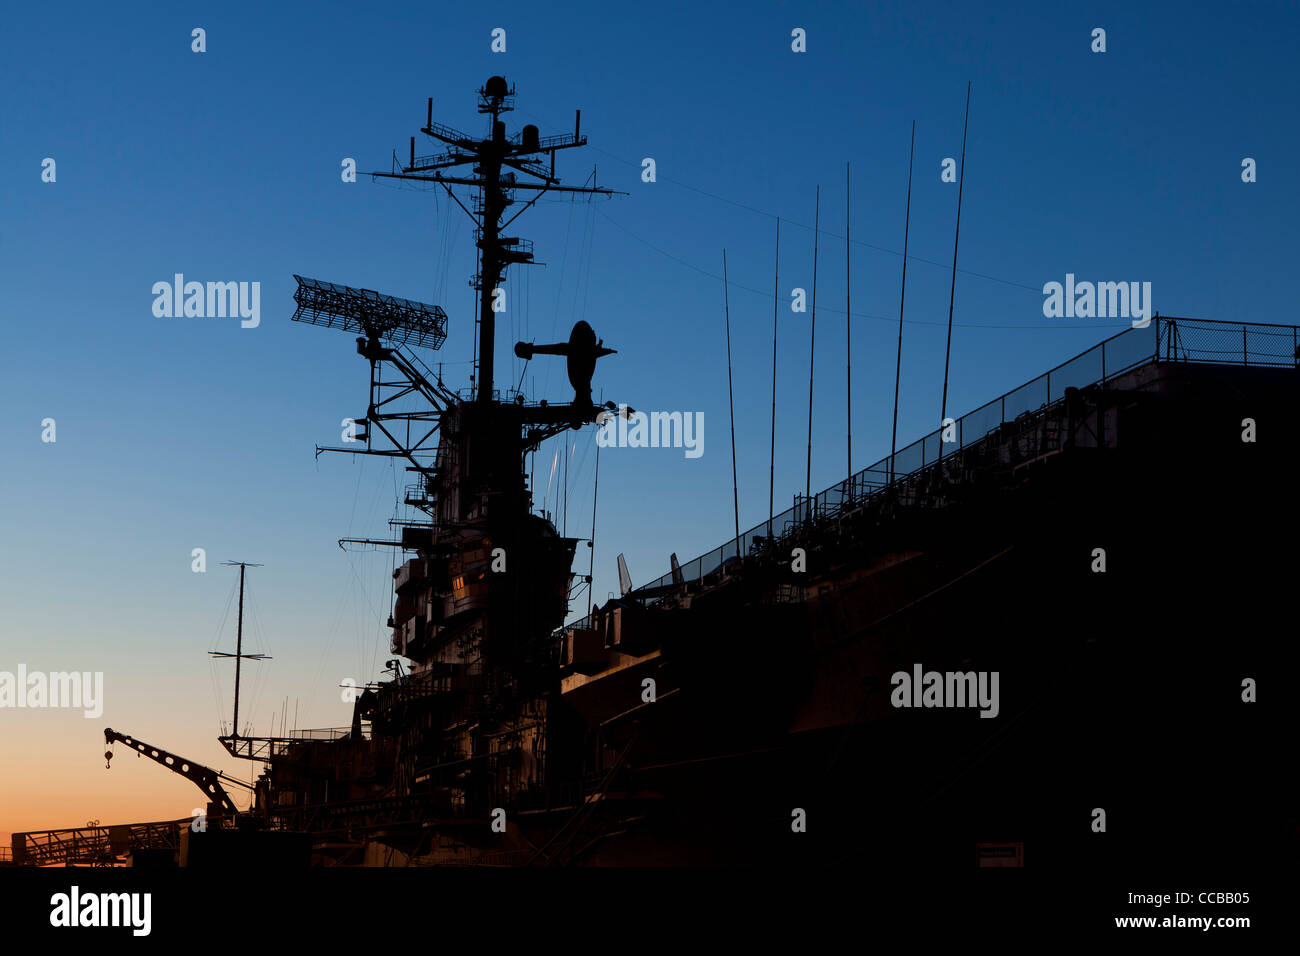 USS Hornet US Navy Essex-class aircraft carrier - Alameda, California USA - Stock Image